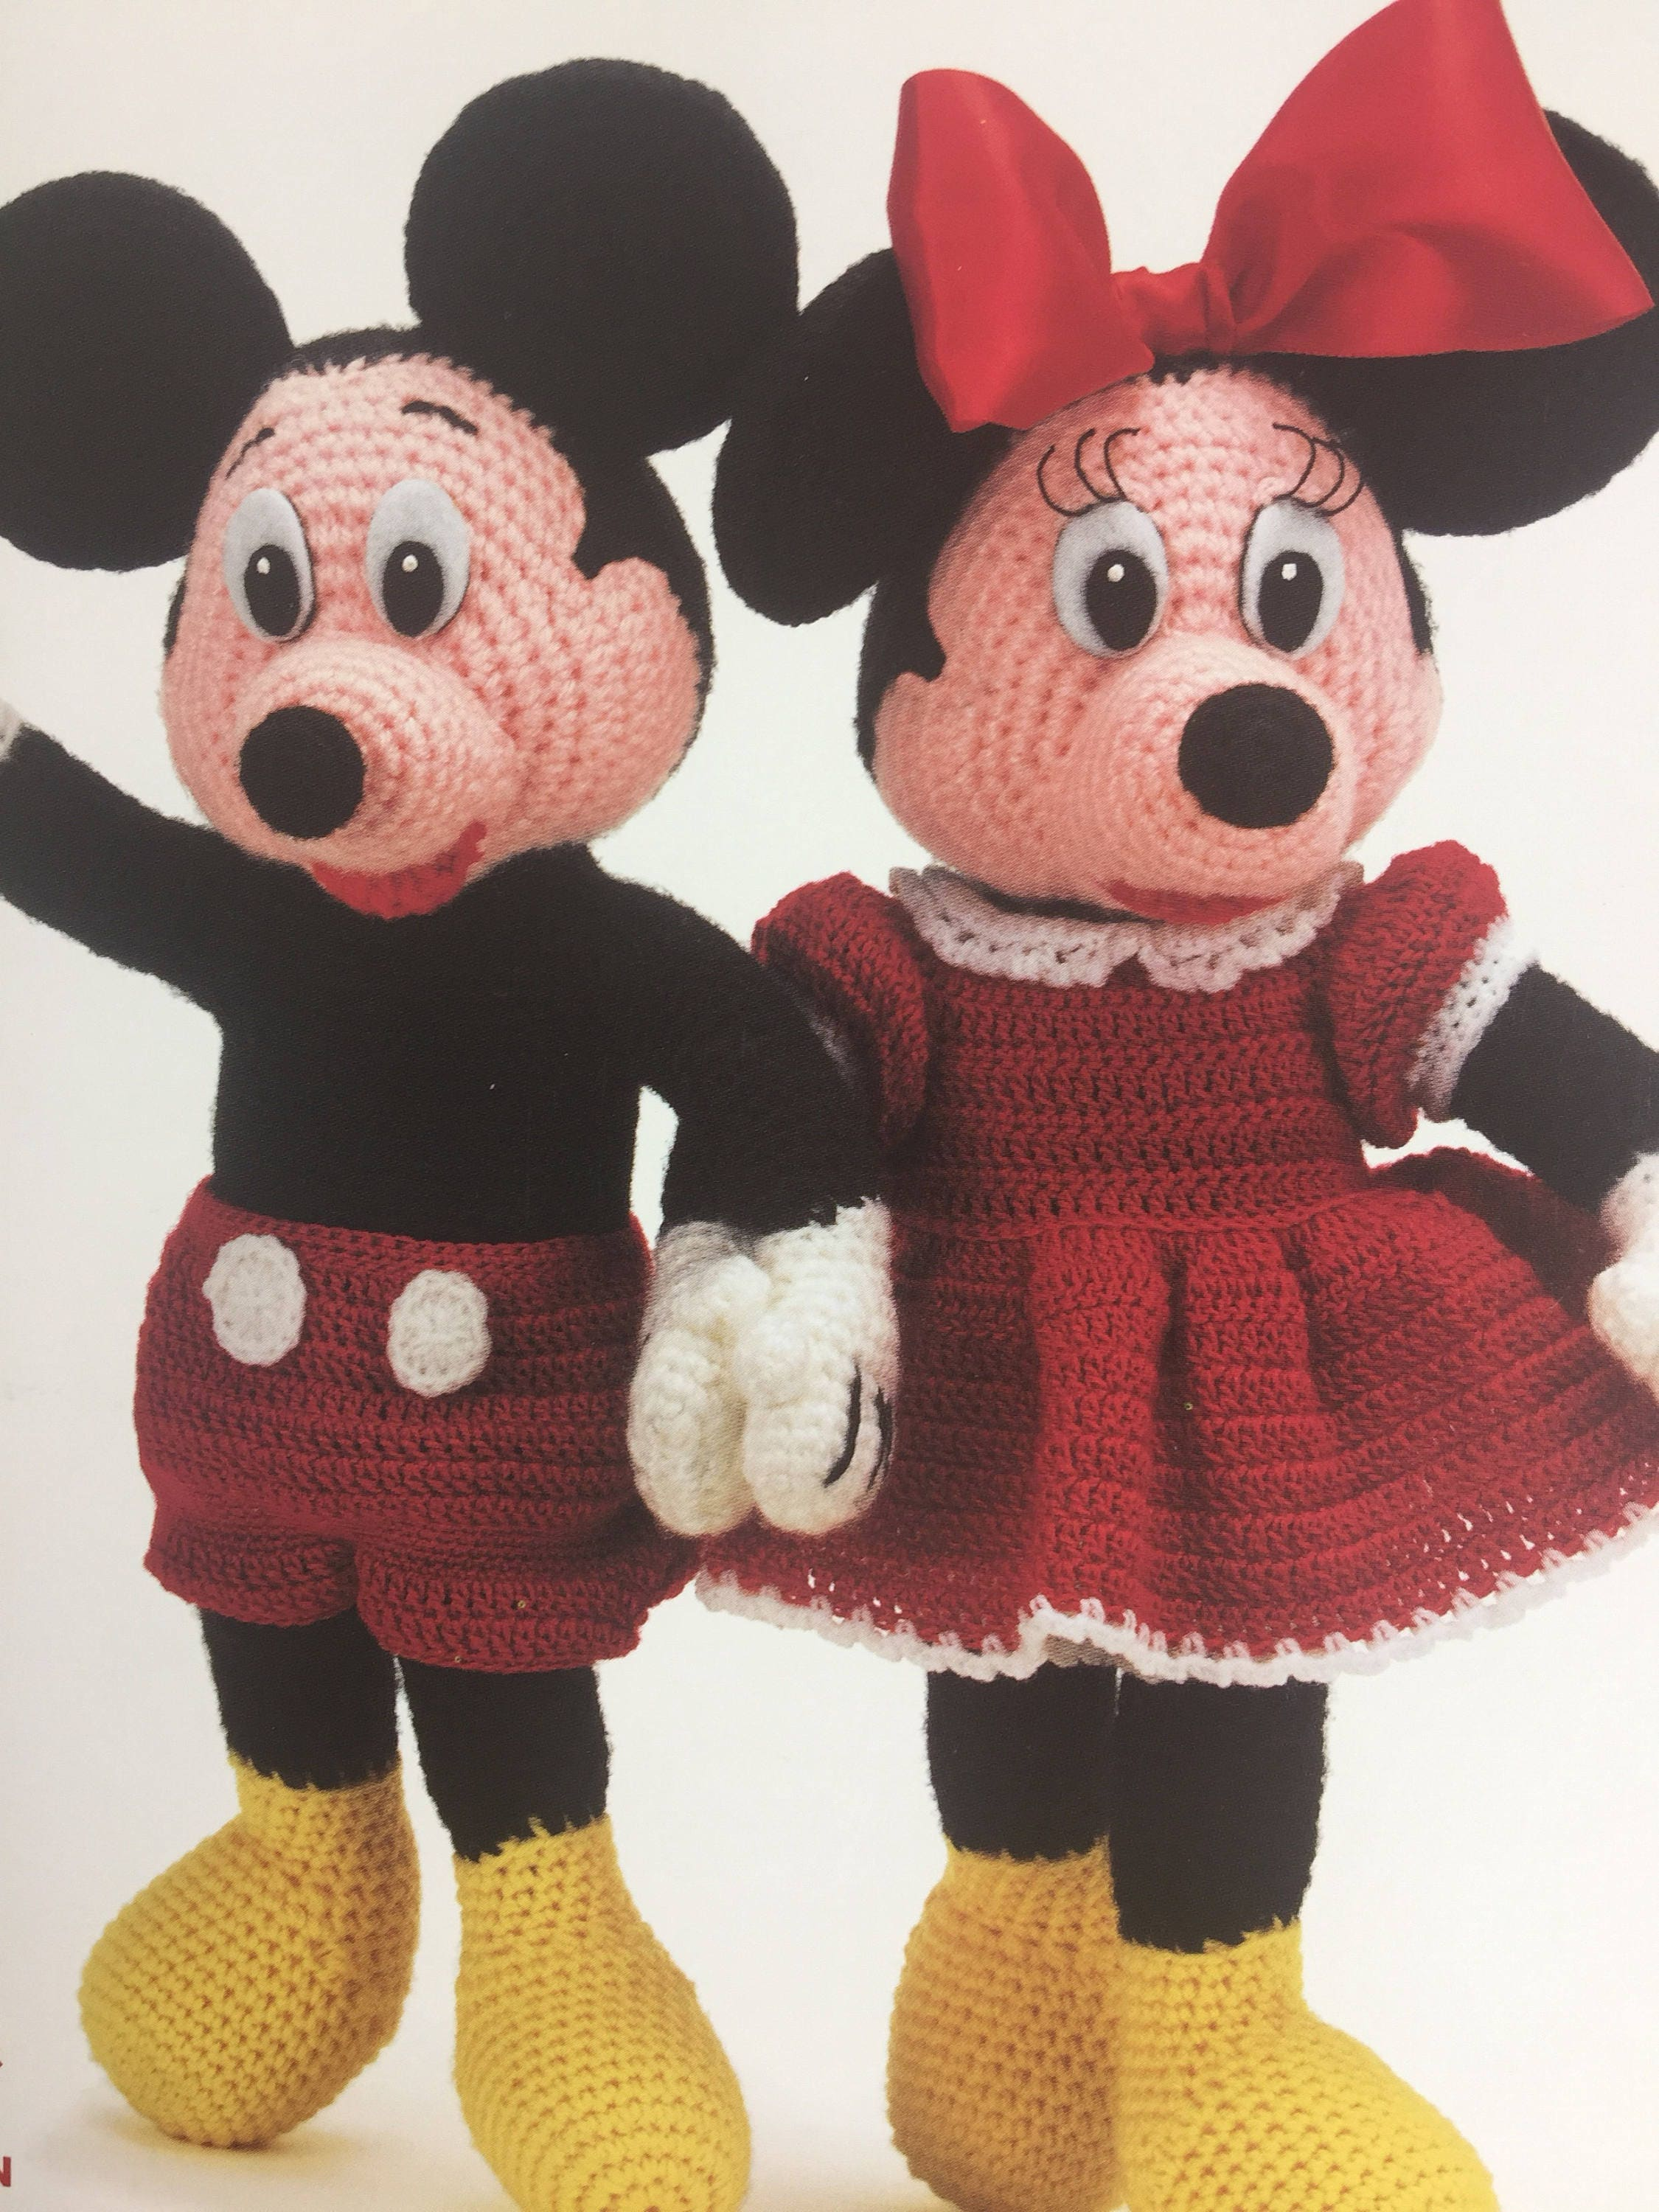 Mickey and minnie mouse dolls crochet pattern disney crochet sold by elliemariedesigns bankloansurffo Choice Image